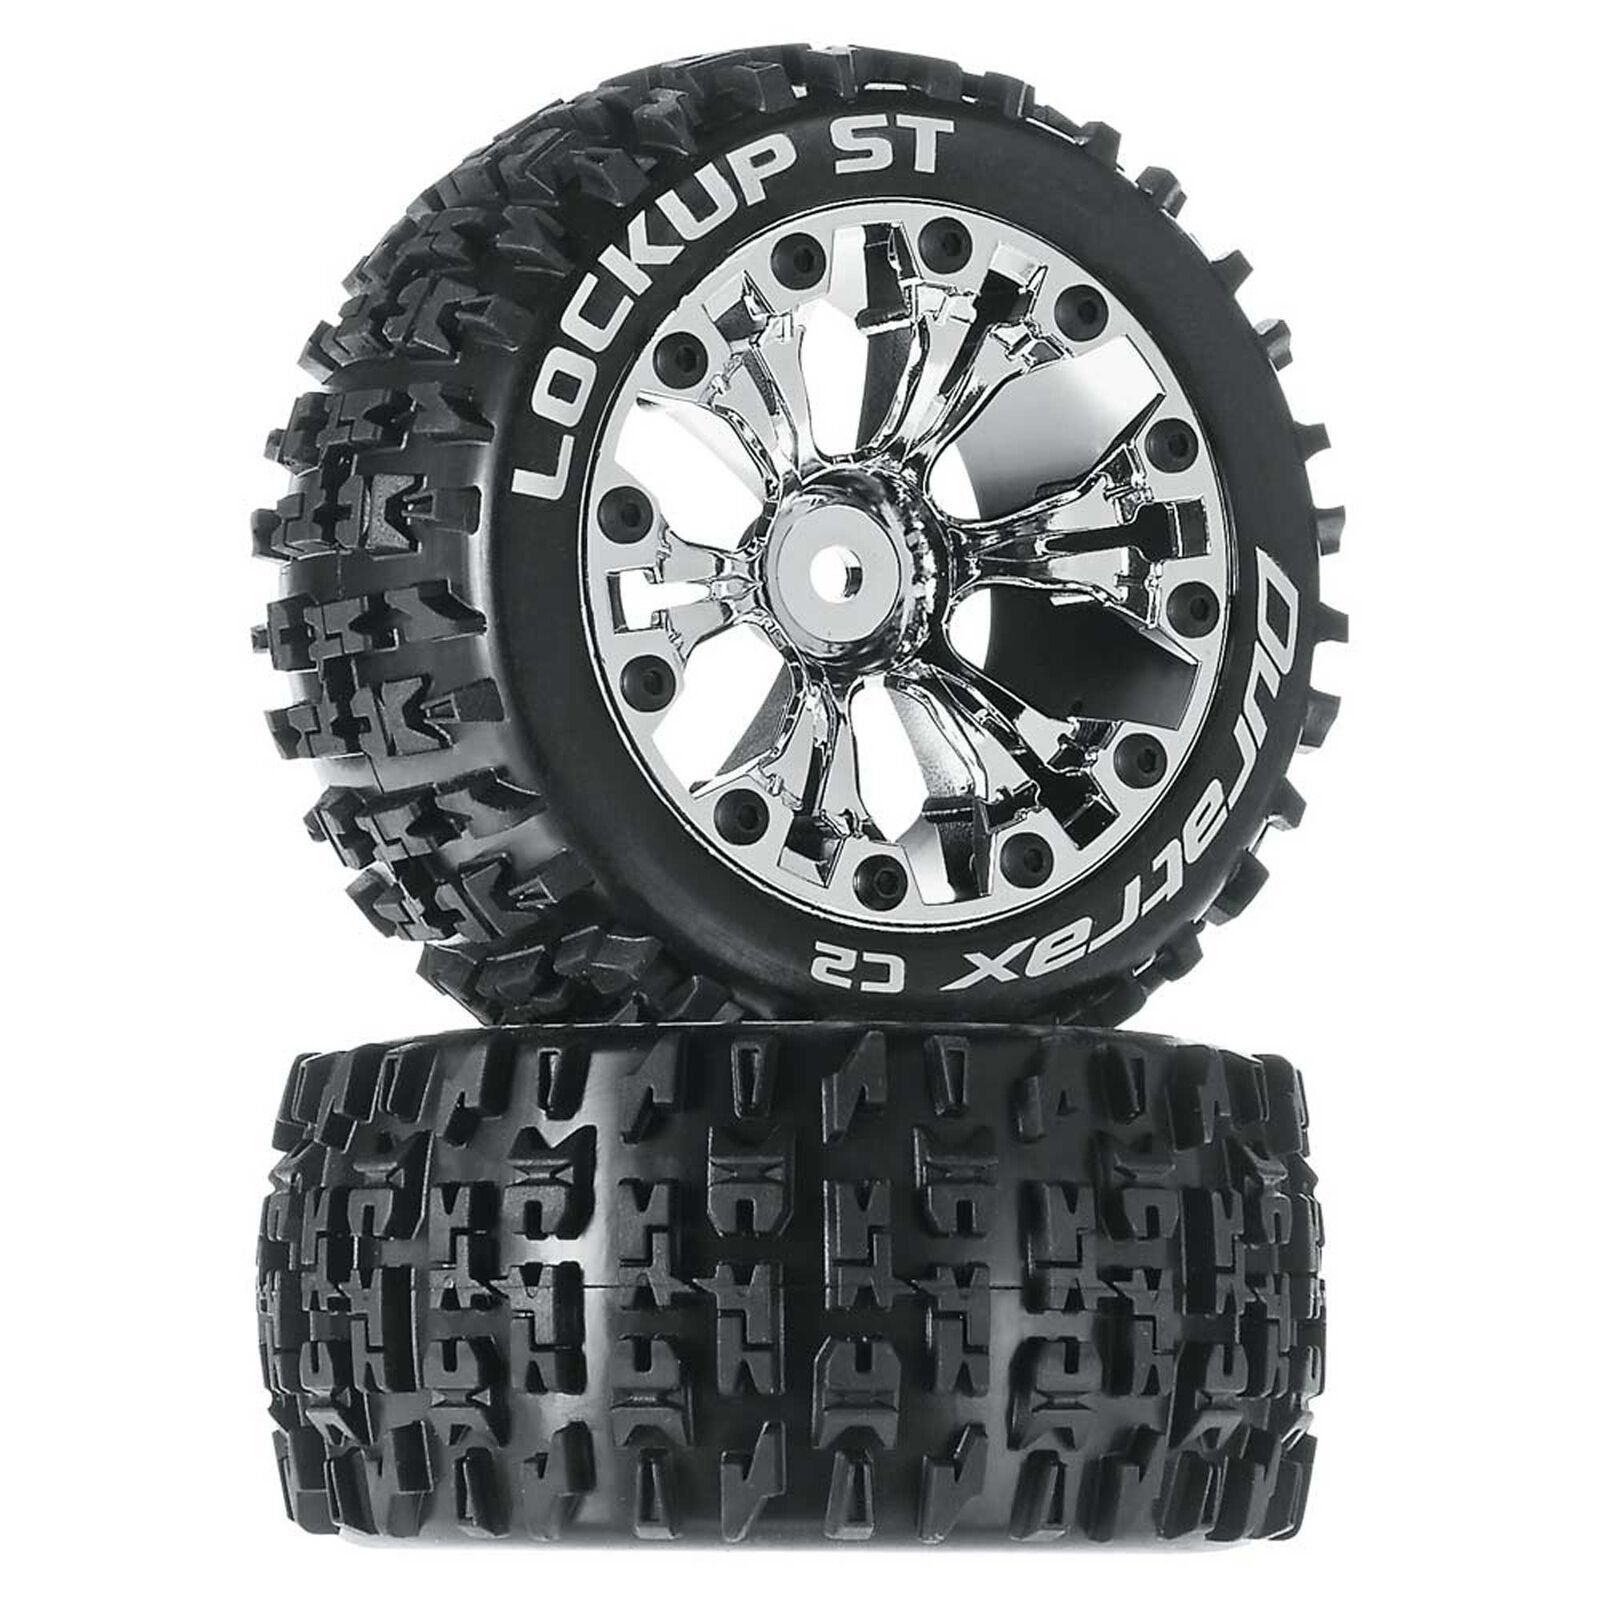 """Lockup ST 2.8"""" 2WD Mounted Rear Tires, Chrome (2)"""